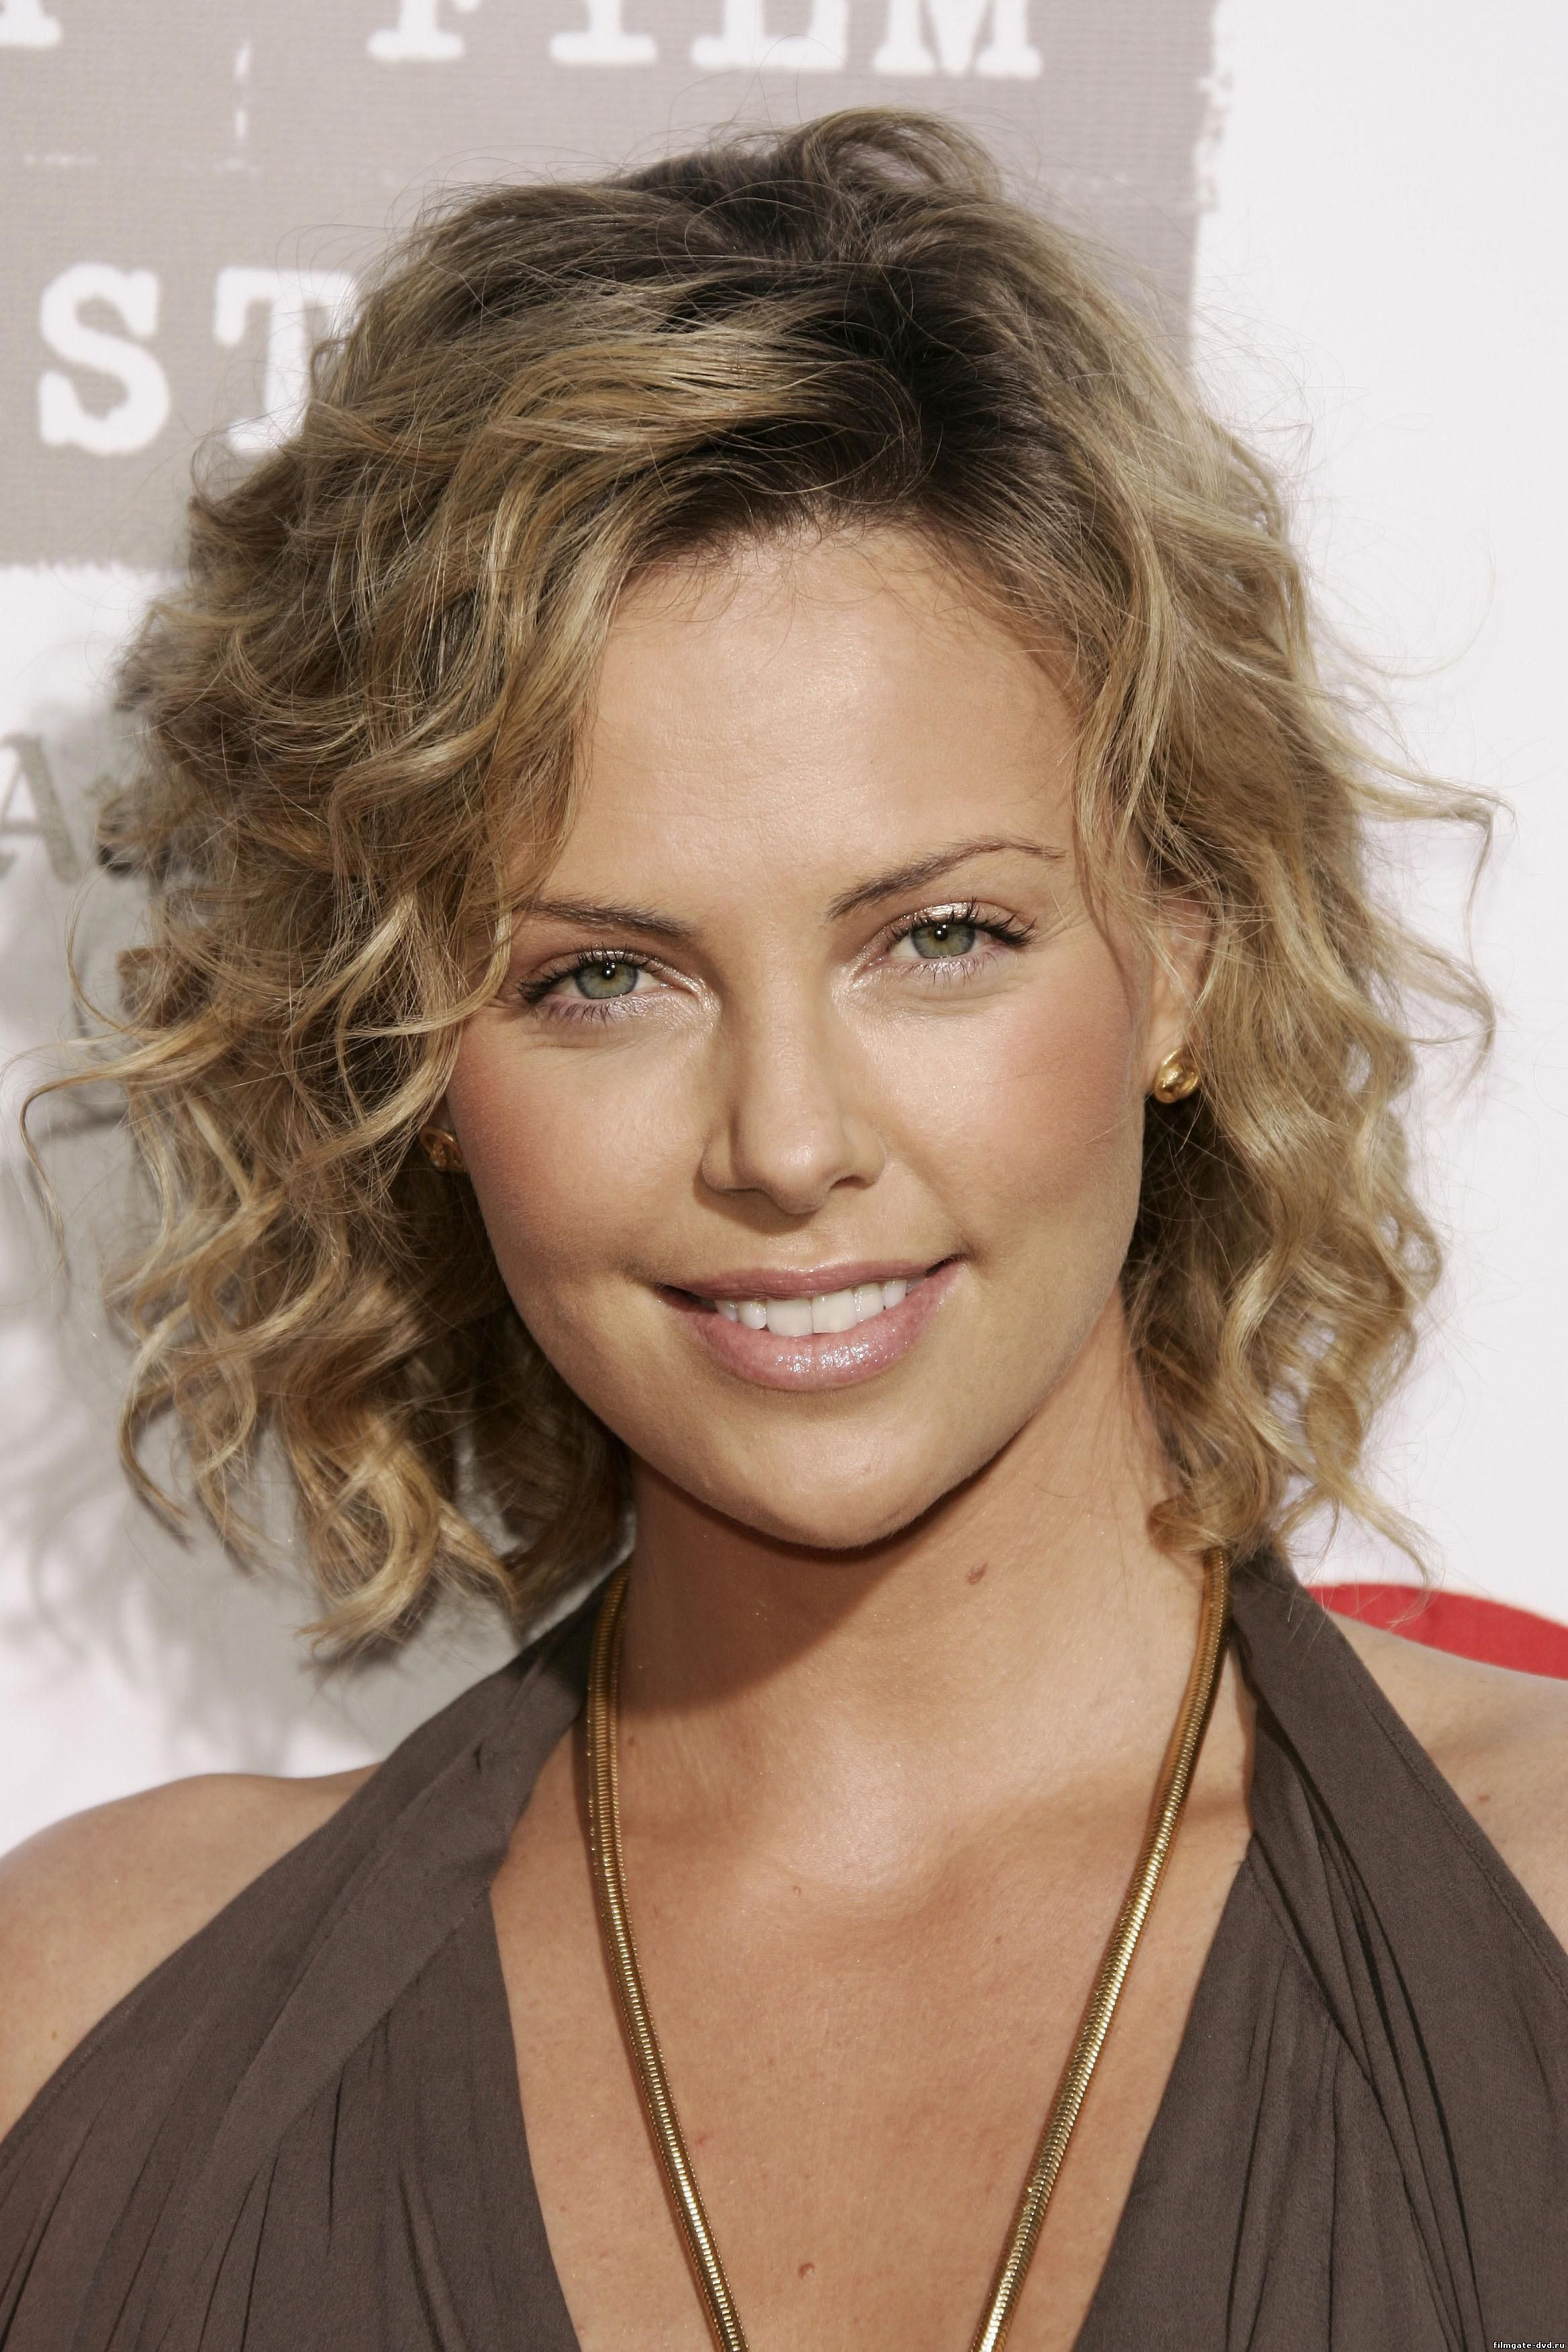 21 Stylish Haircuts For Curly Hair Naturally Curly Naturally